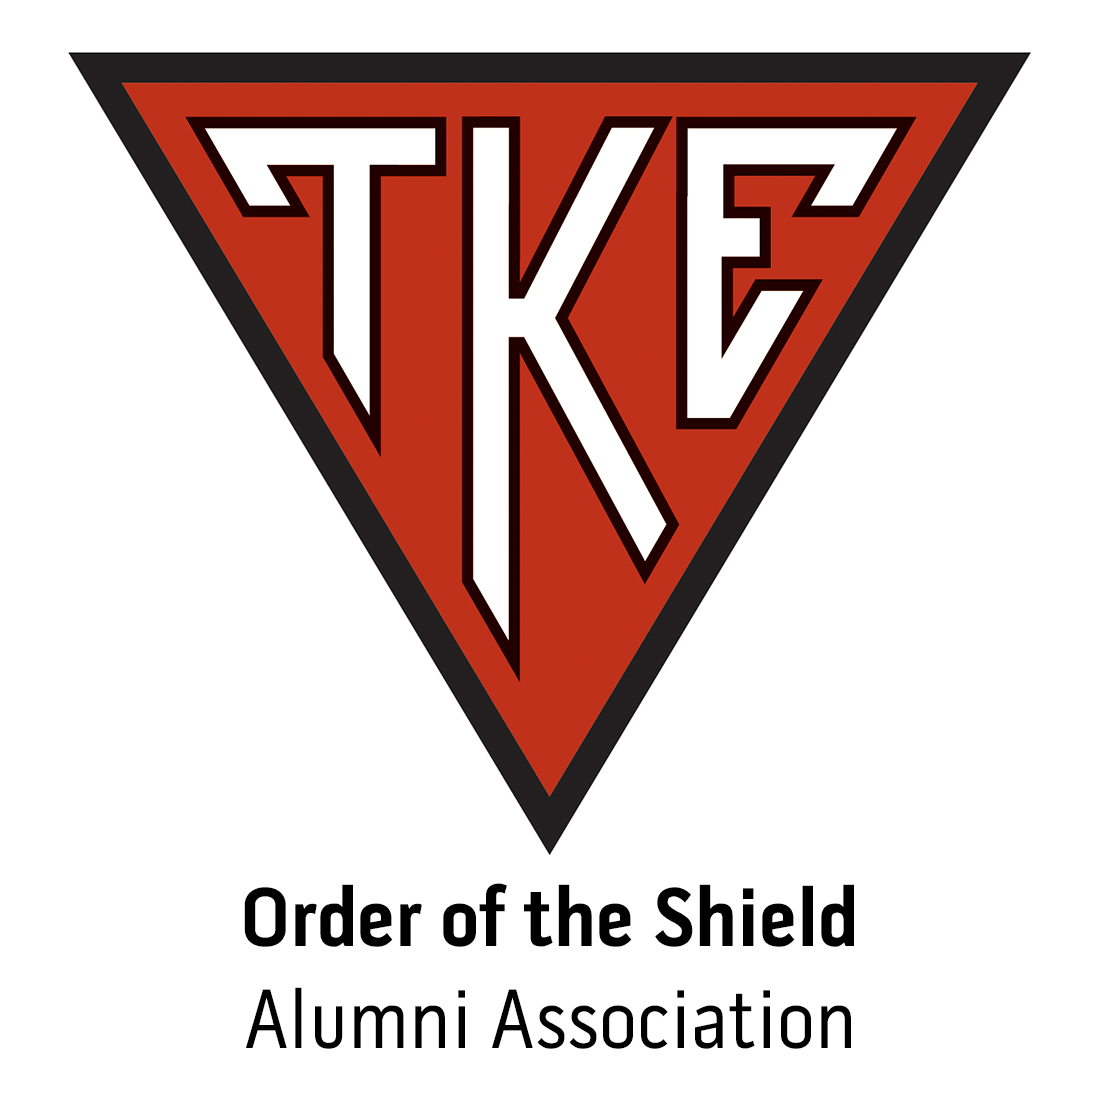 Order of the Shield Alumni Association for Military